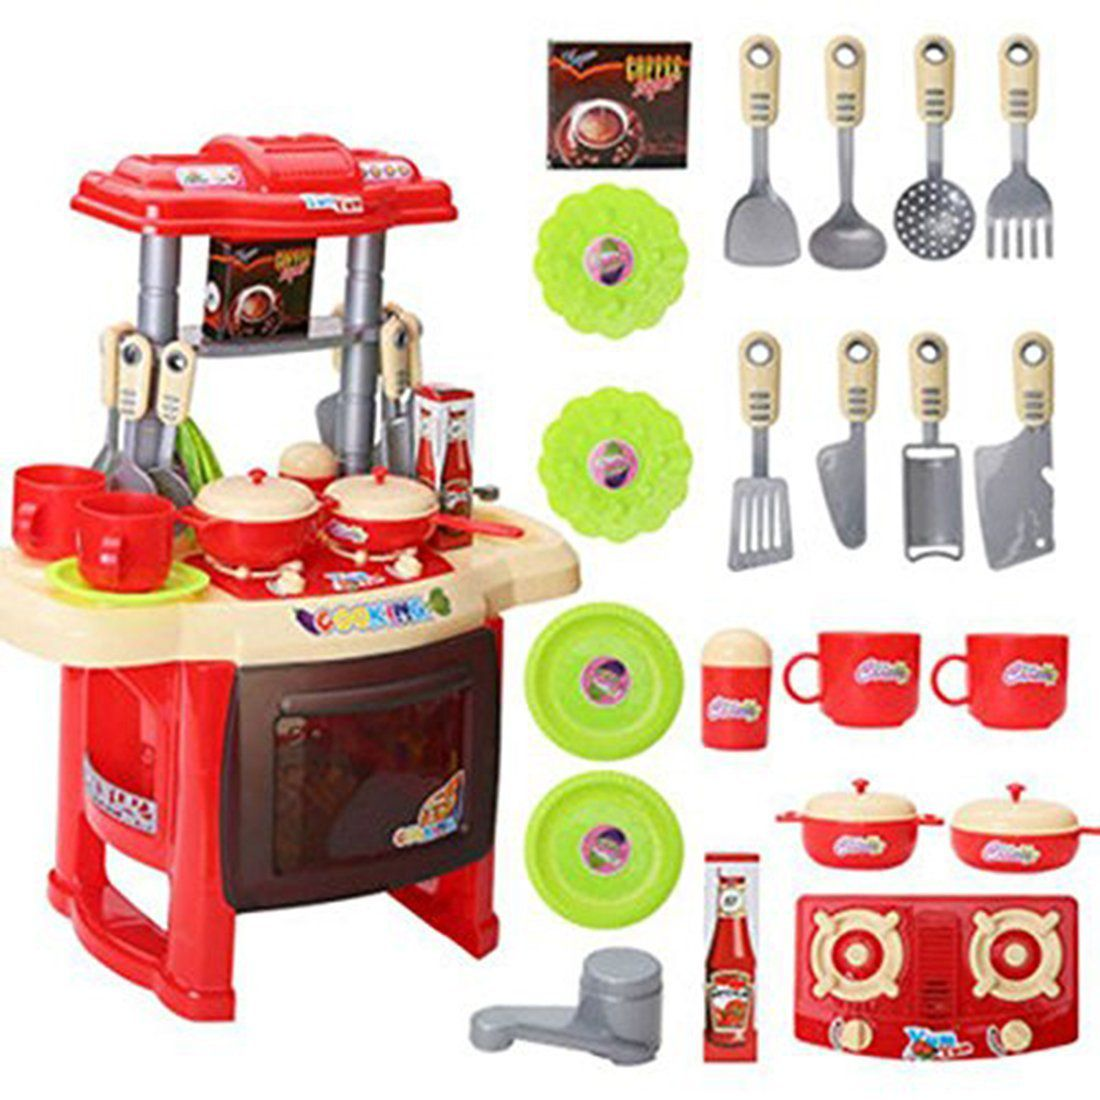 Webby kids kitchen set children kitchen toys large kitchen for Fake kitchen set